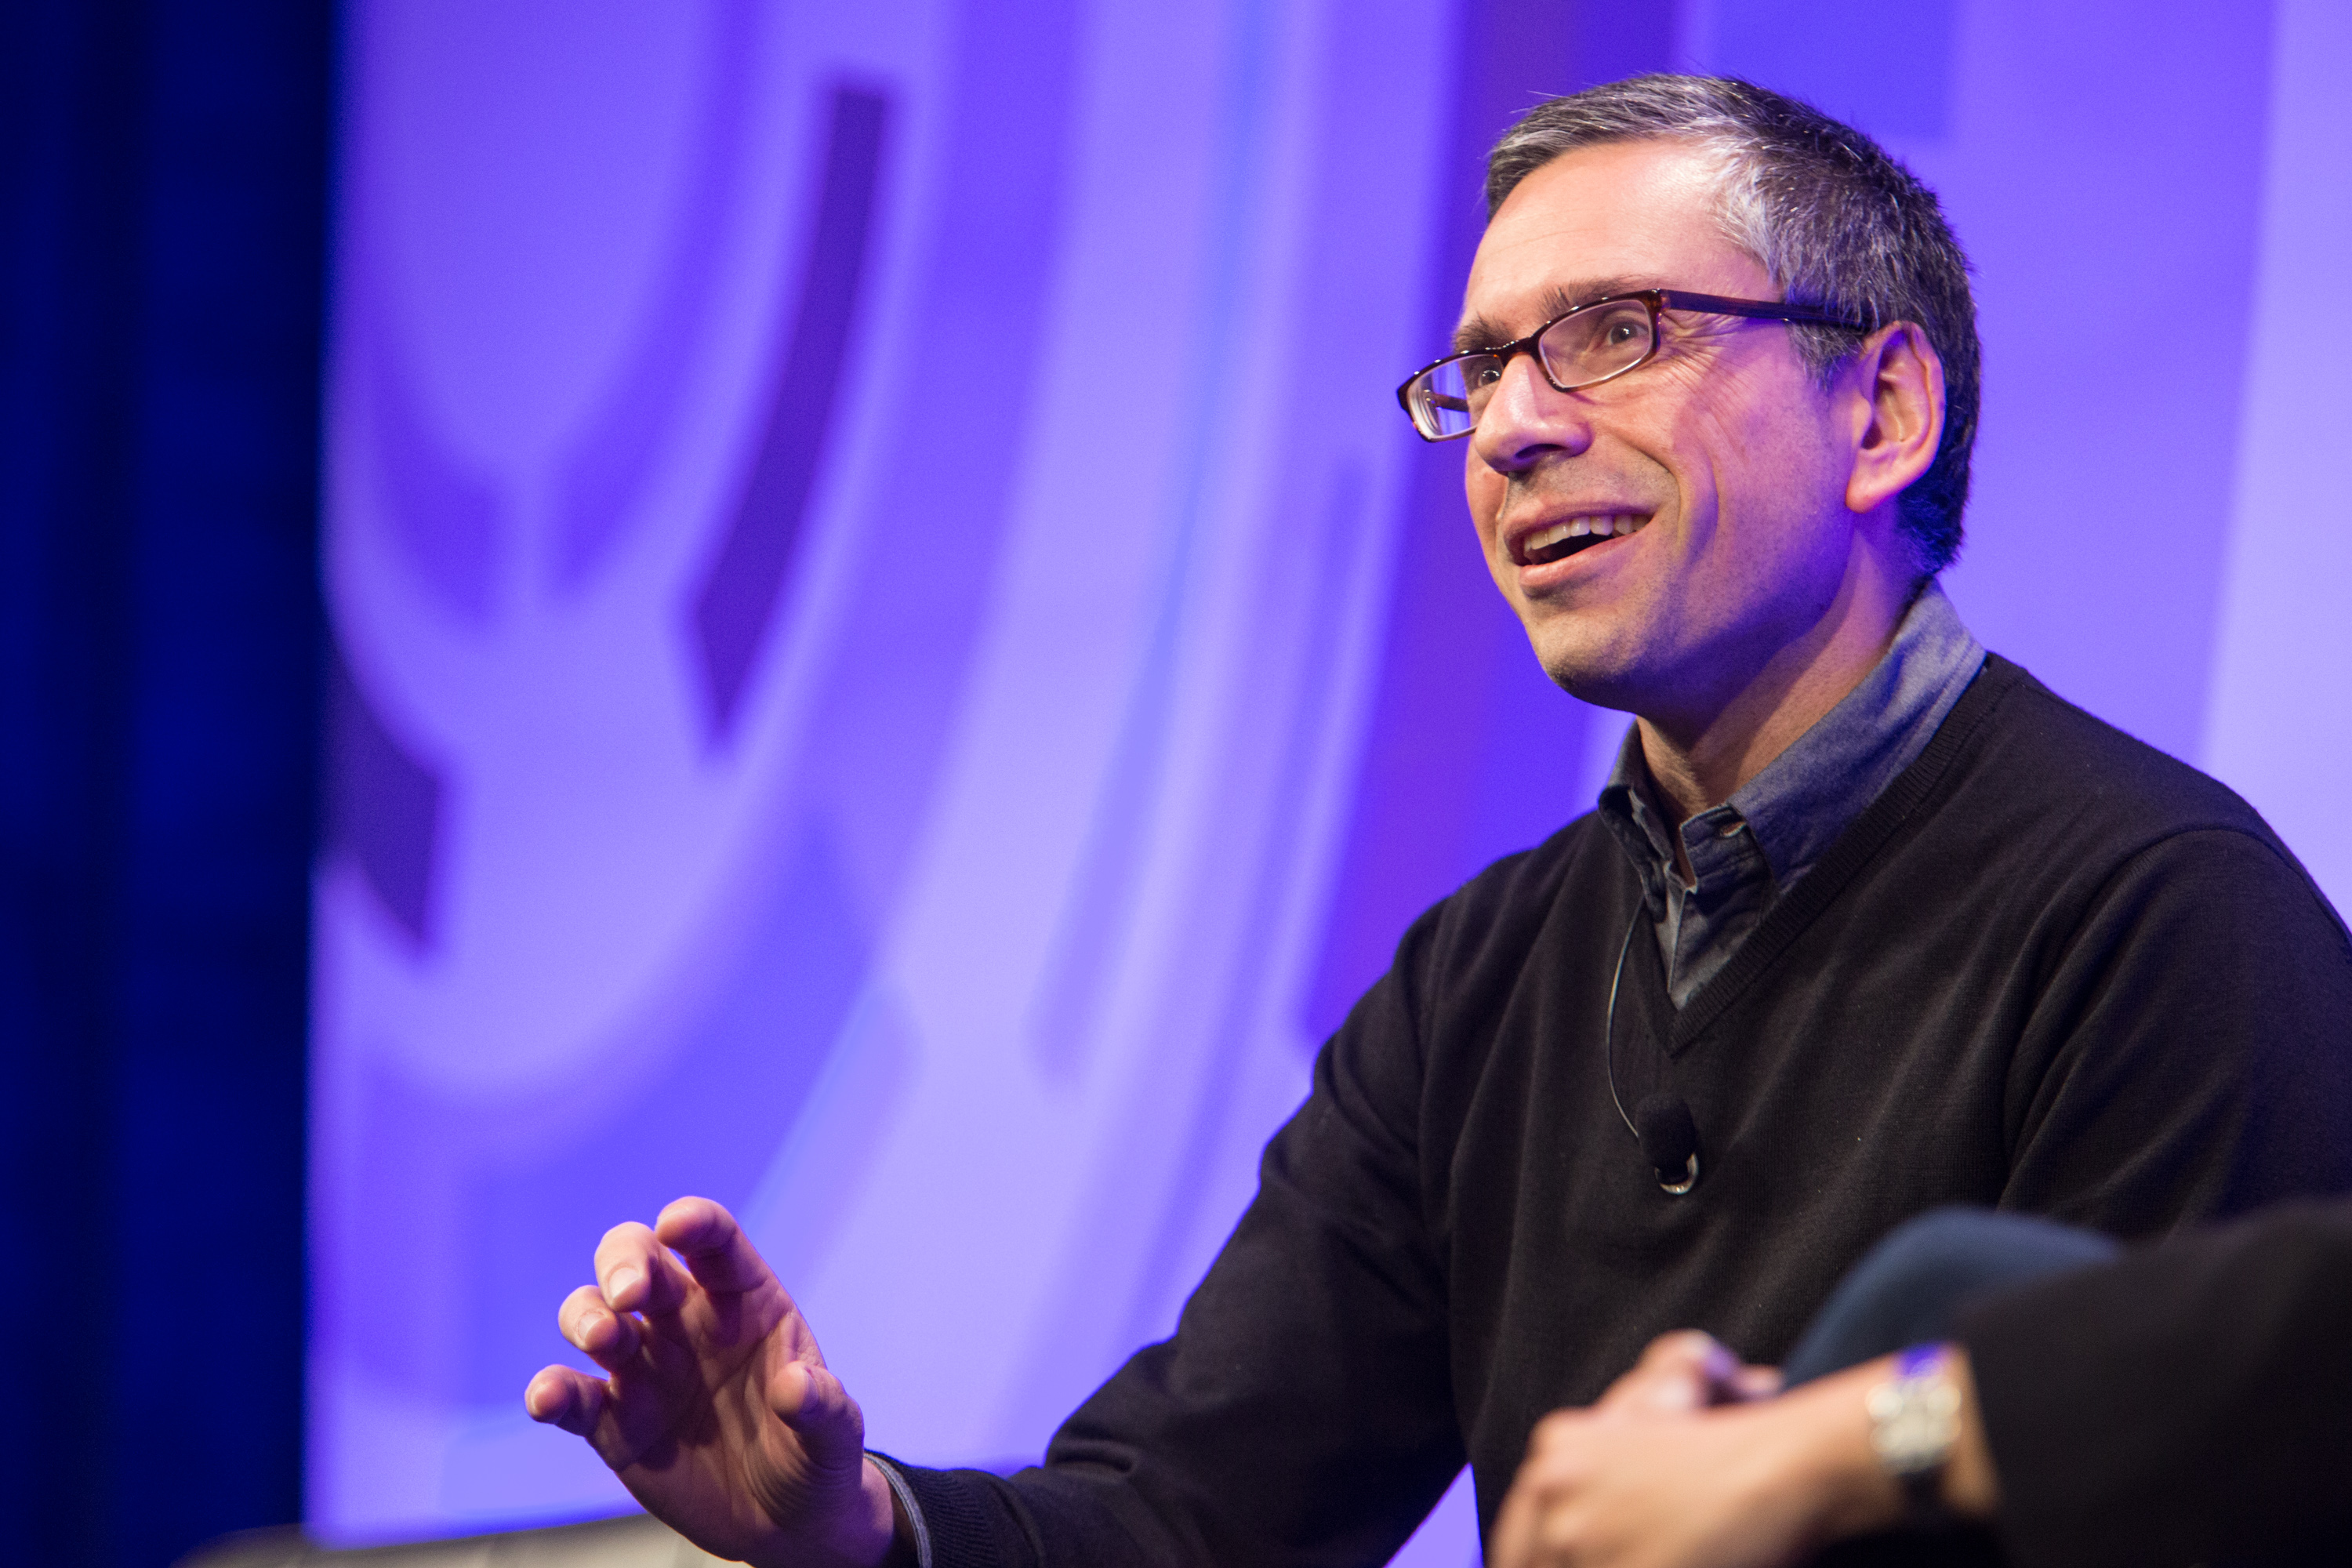 Paul Brody — VP and North America Leader, Mobile and Internet of Things, IBM